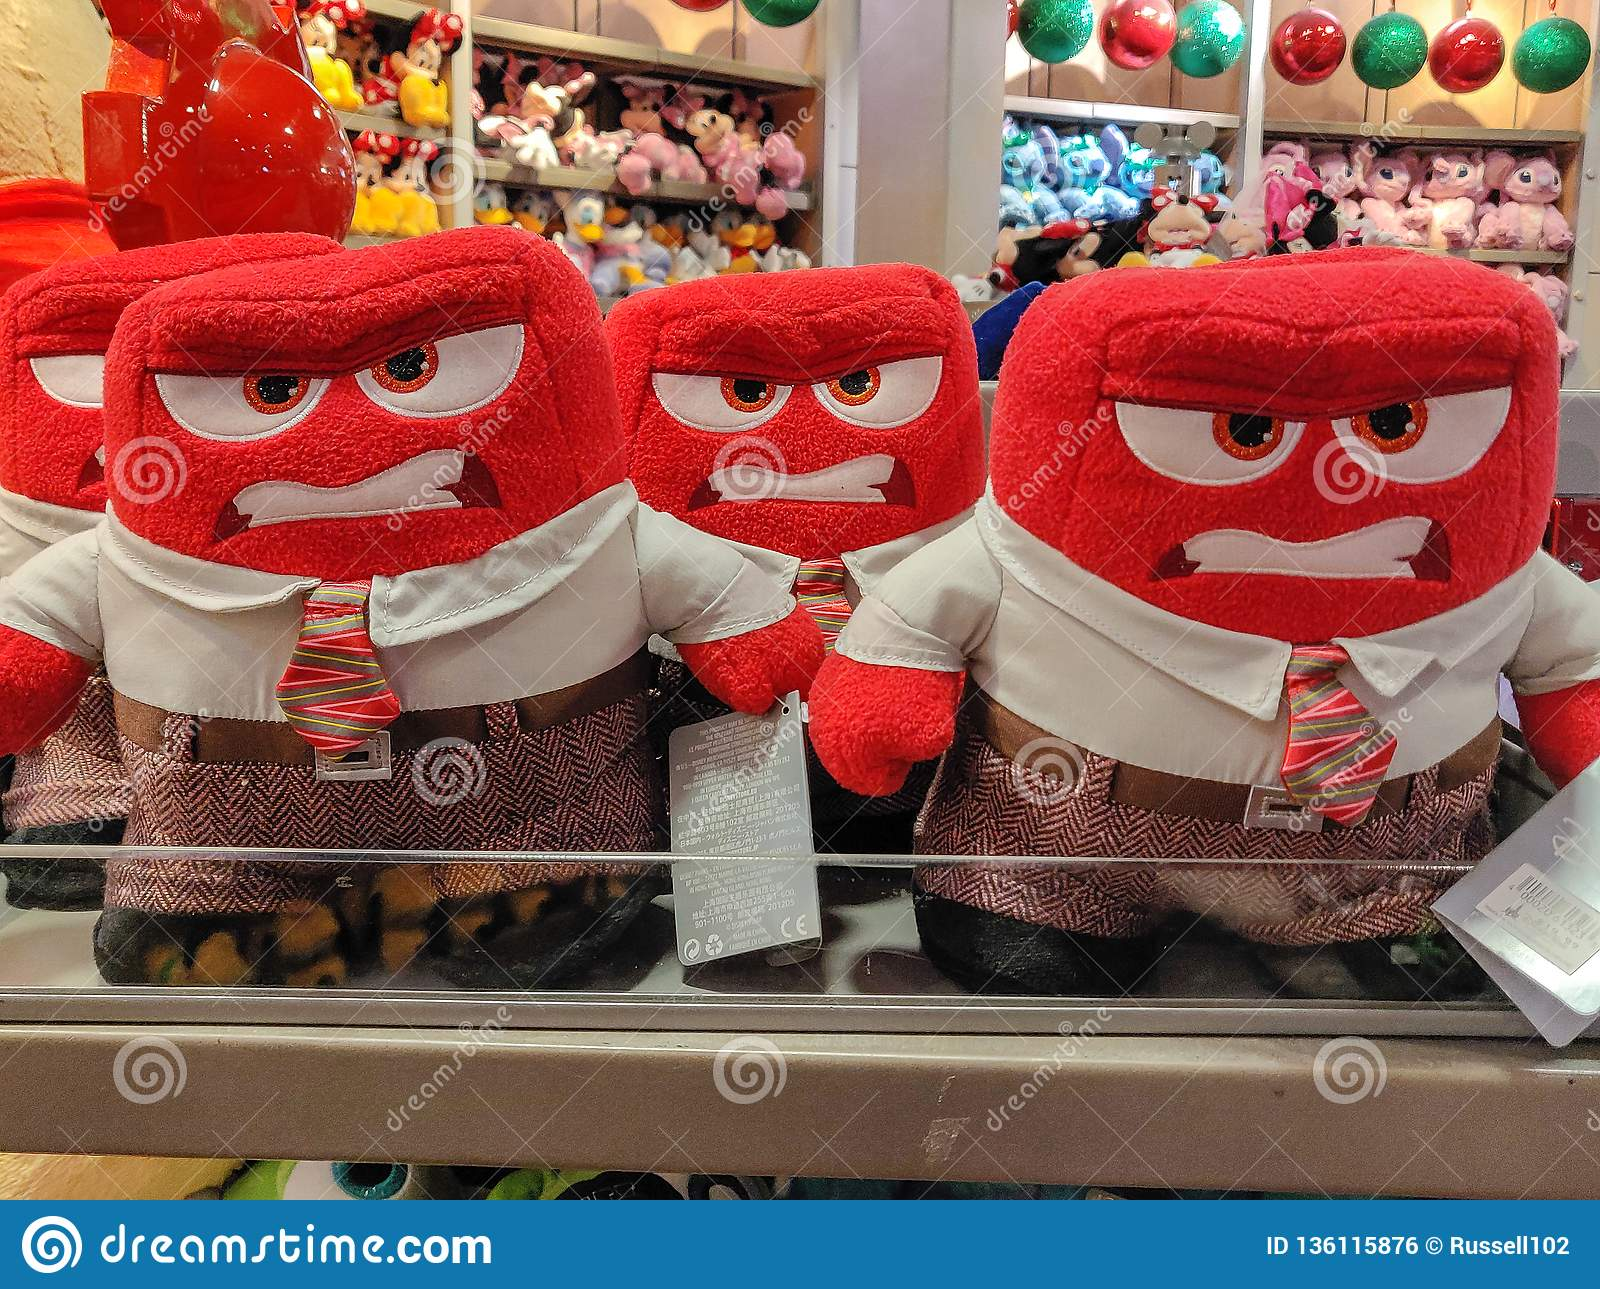 Anger Plush Toy From Inside Out For Sale In A Shop